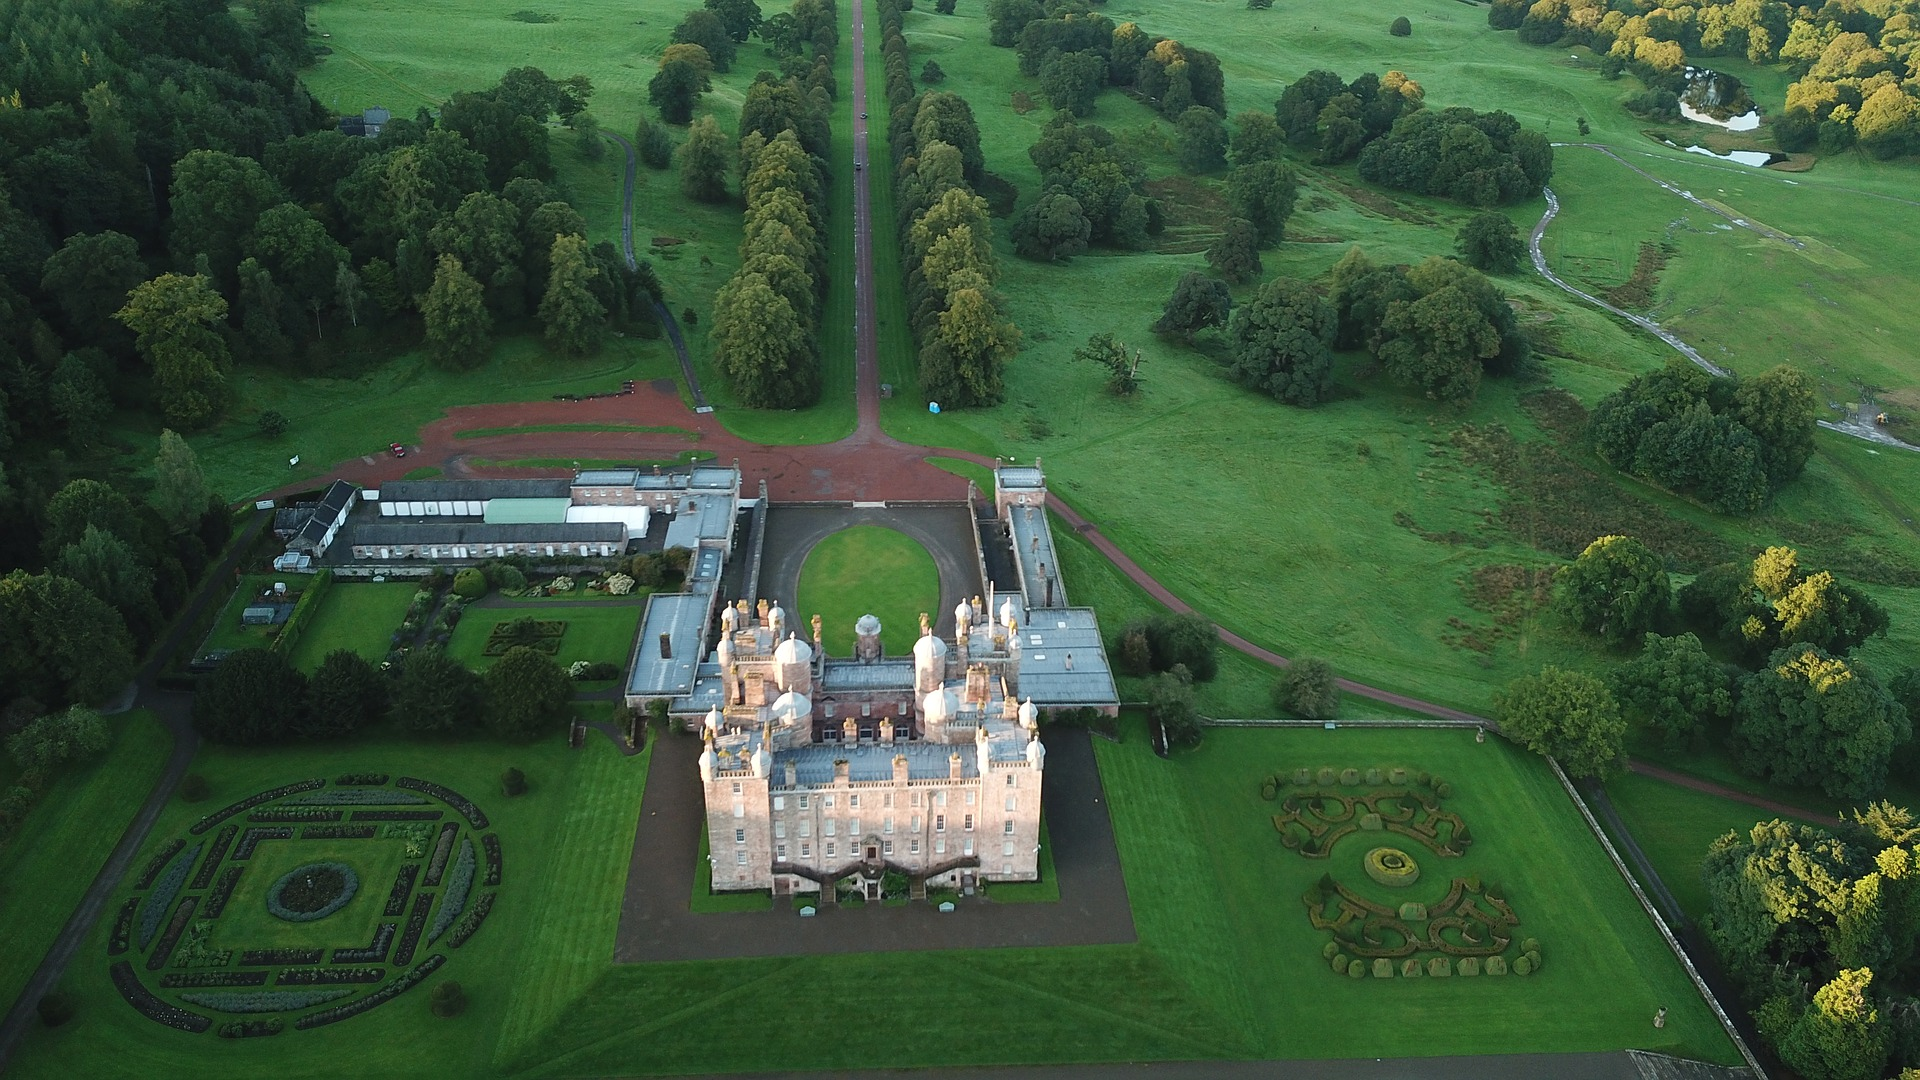 Cenário de Outlander Bellhurst Manor